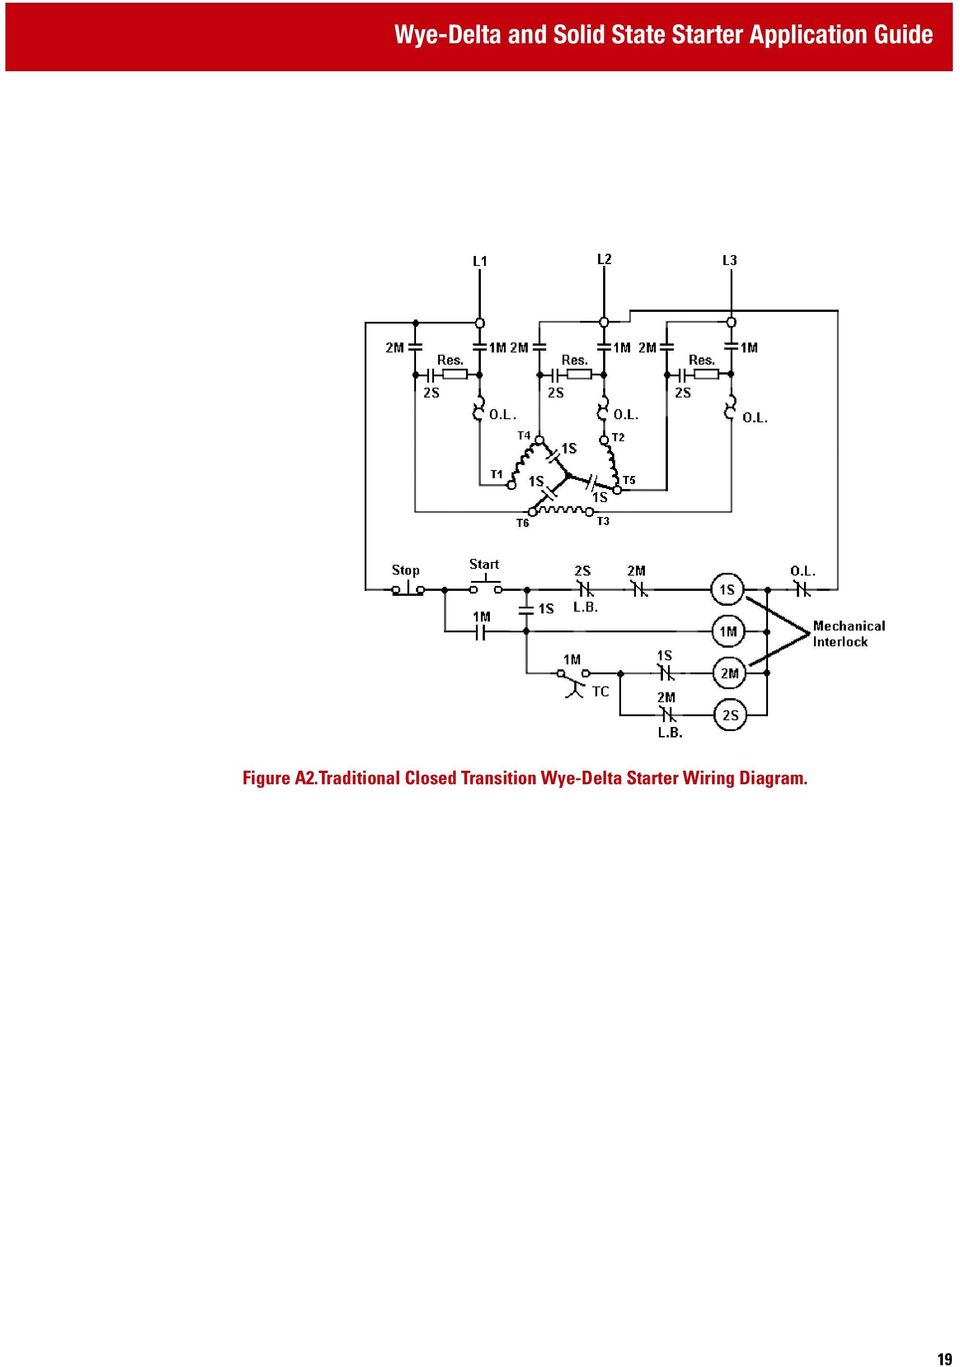 Wye Delta And Solid State Starter Application Guide Pdf With Motor Wiring Diagram On Traditional Closed Transition 19